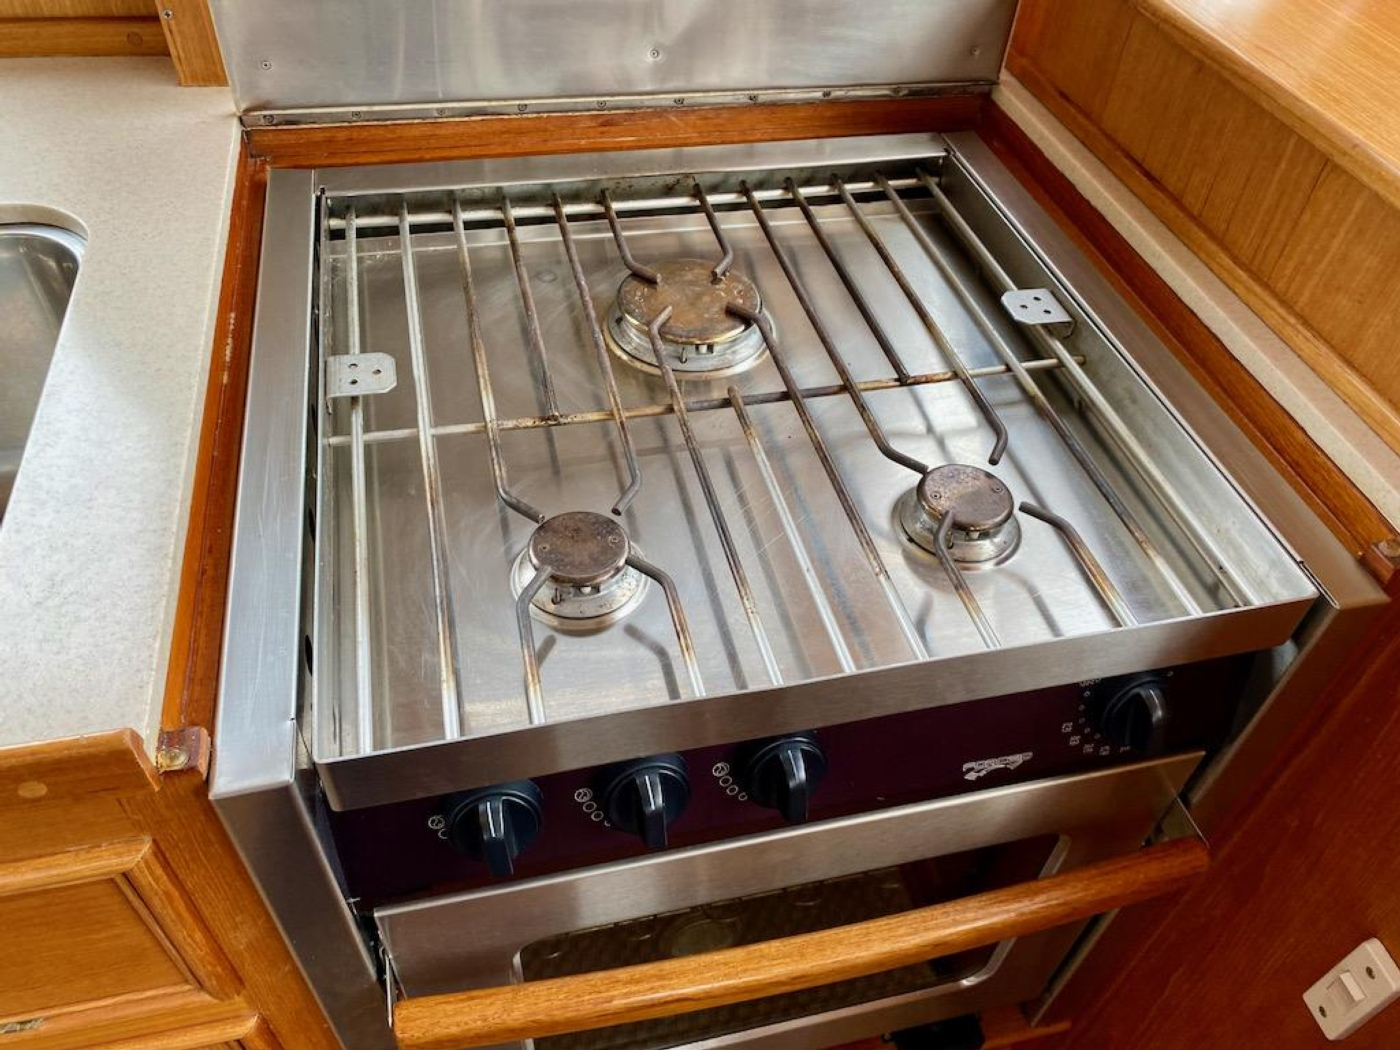 1998 Grand Banks 42 Classic, Galley stove